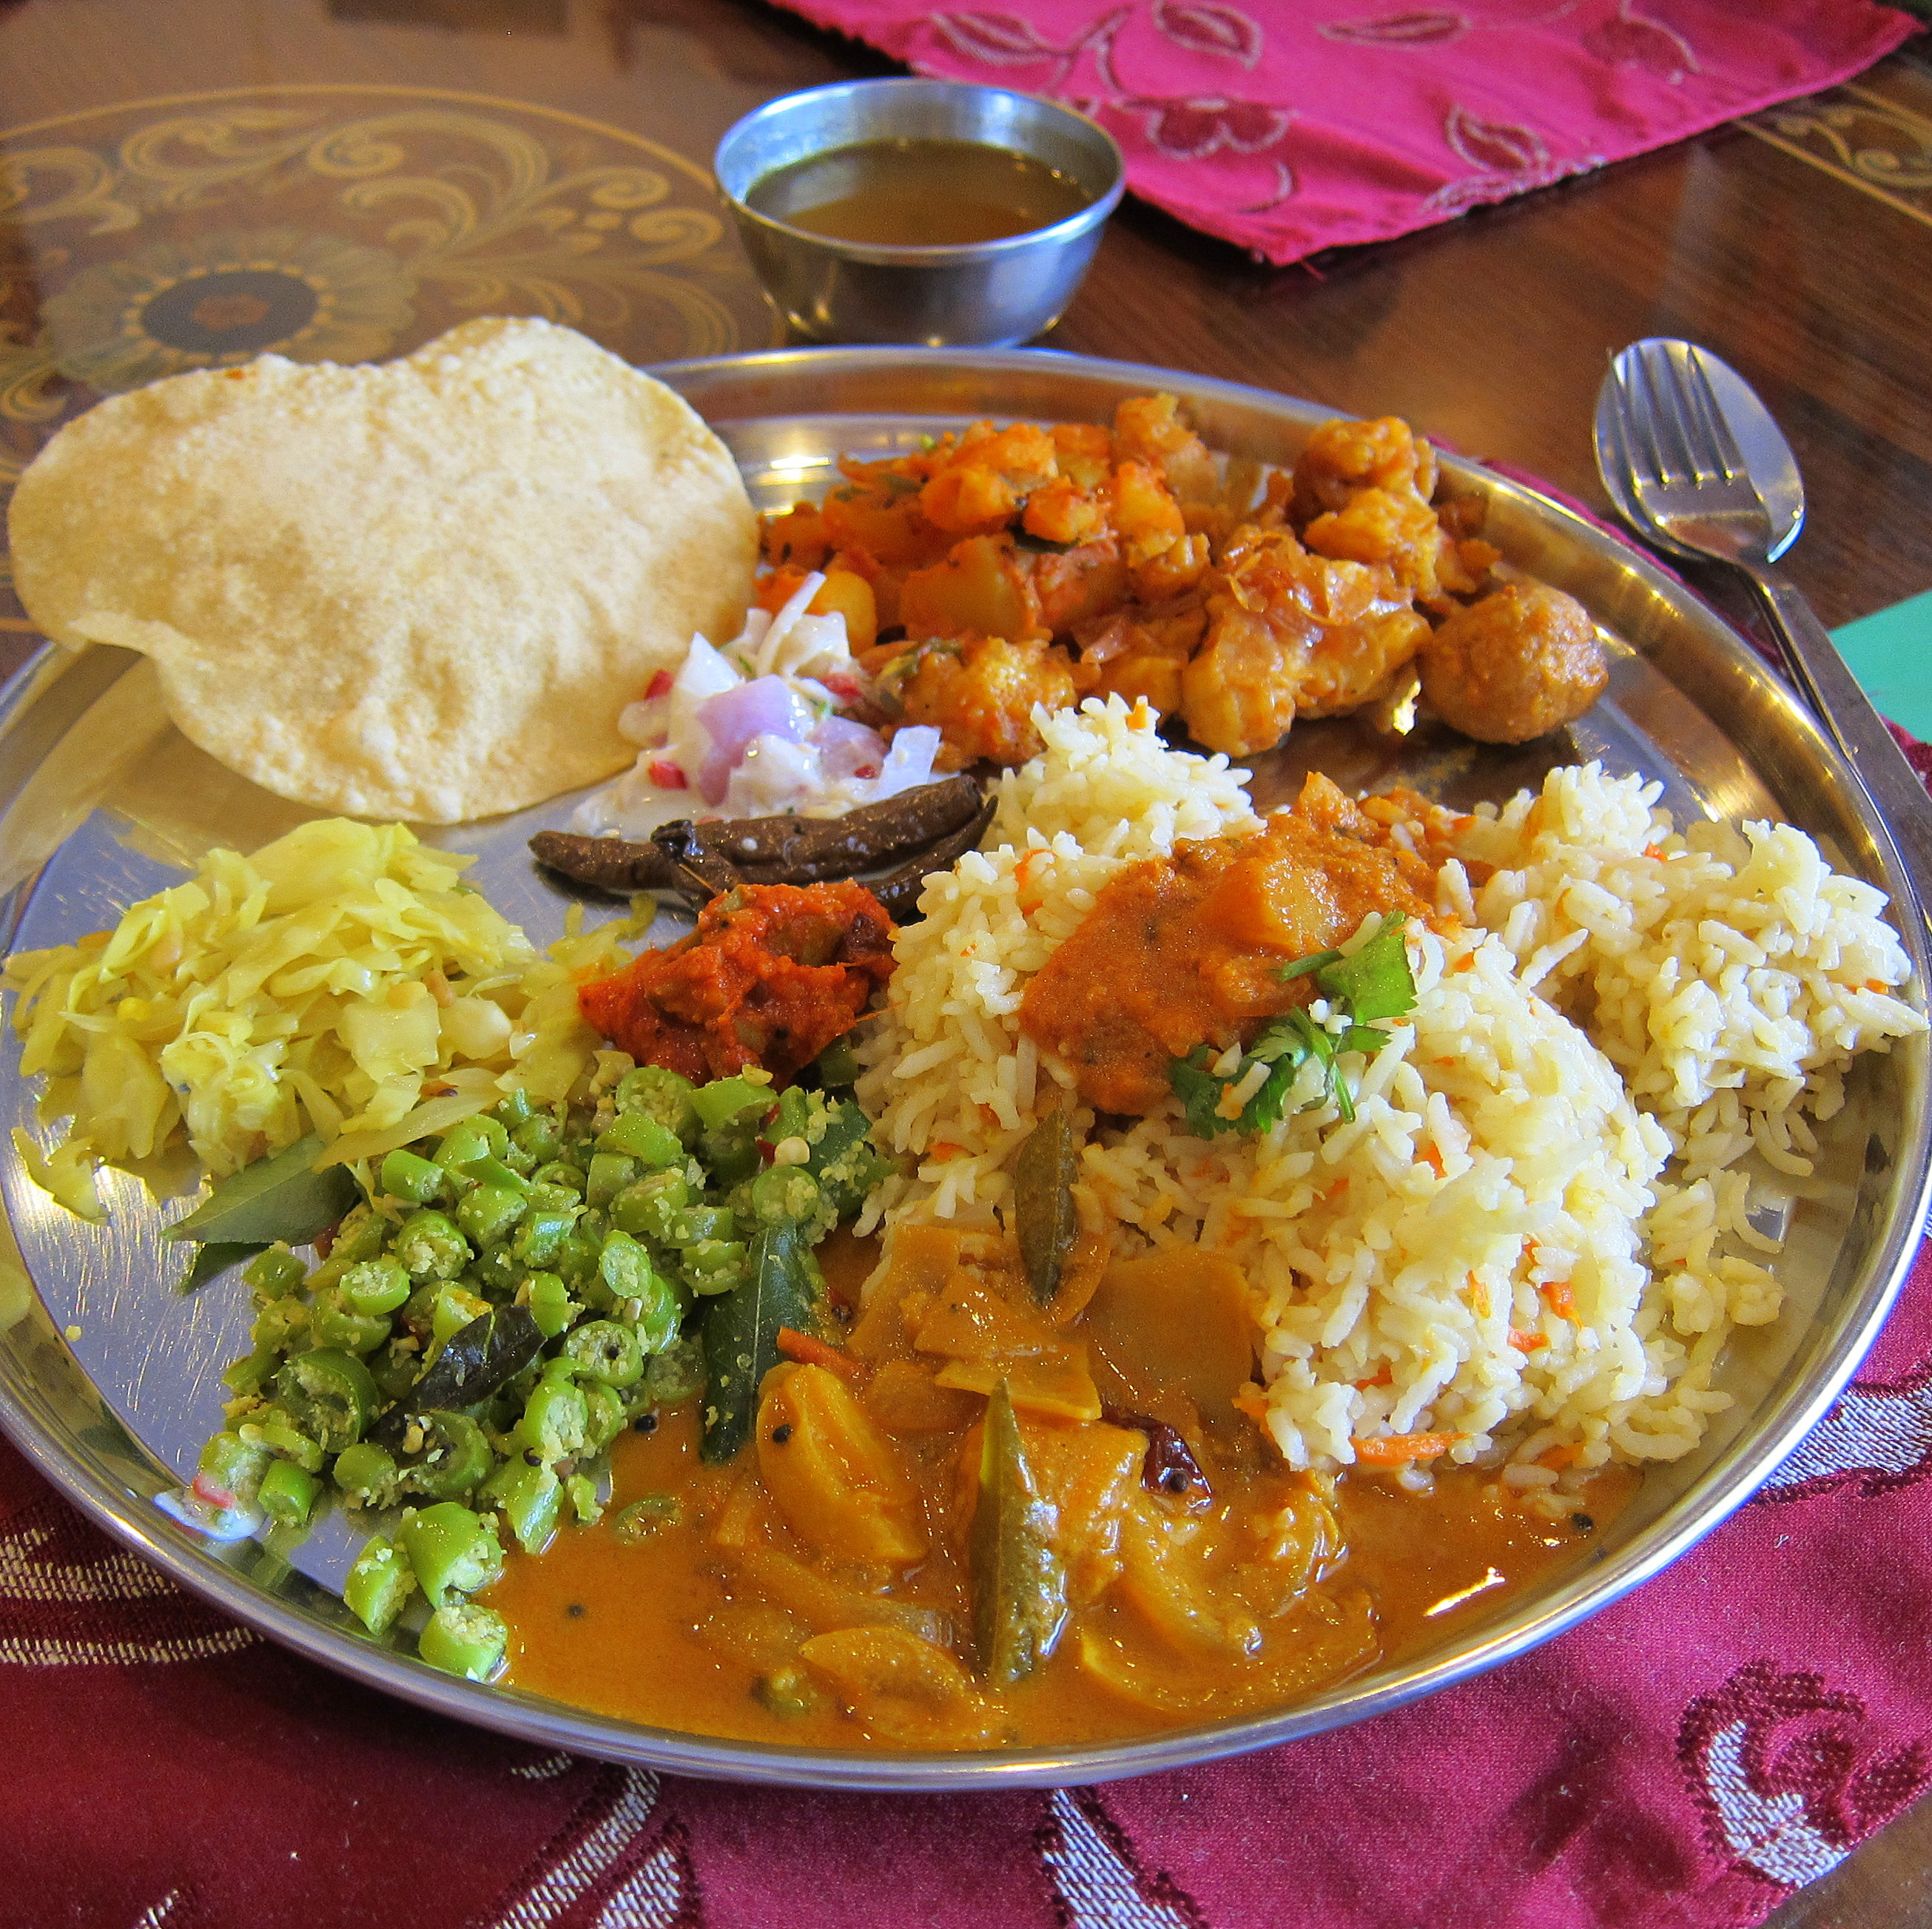 Saffron Indian Restaurant Arbroath